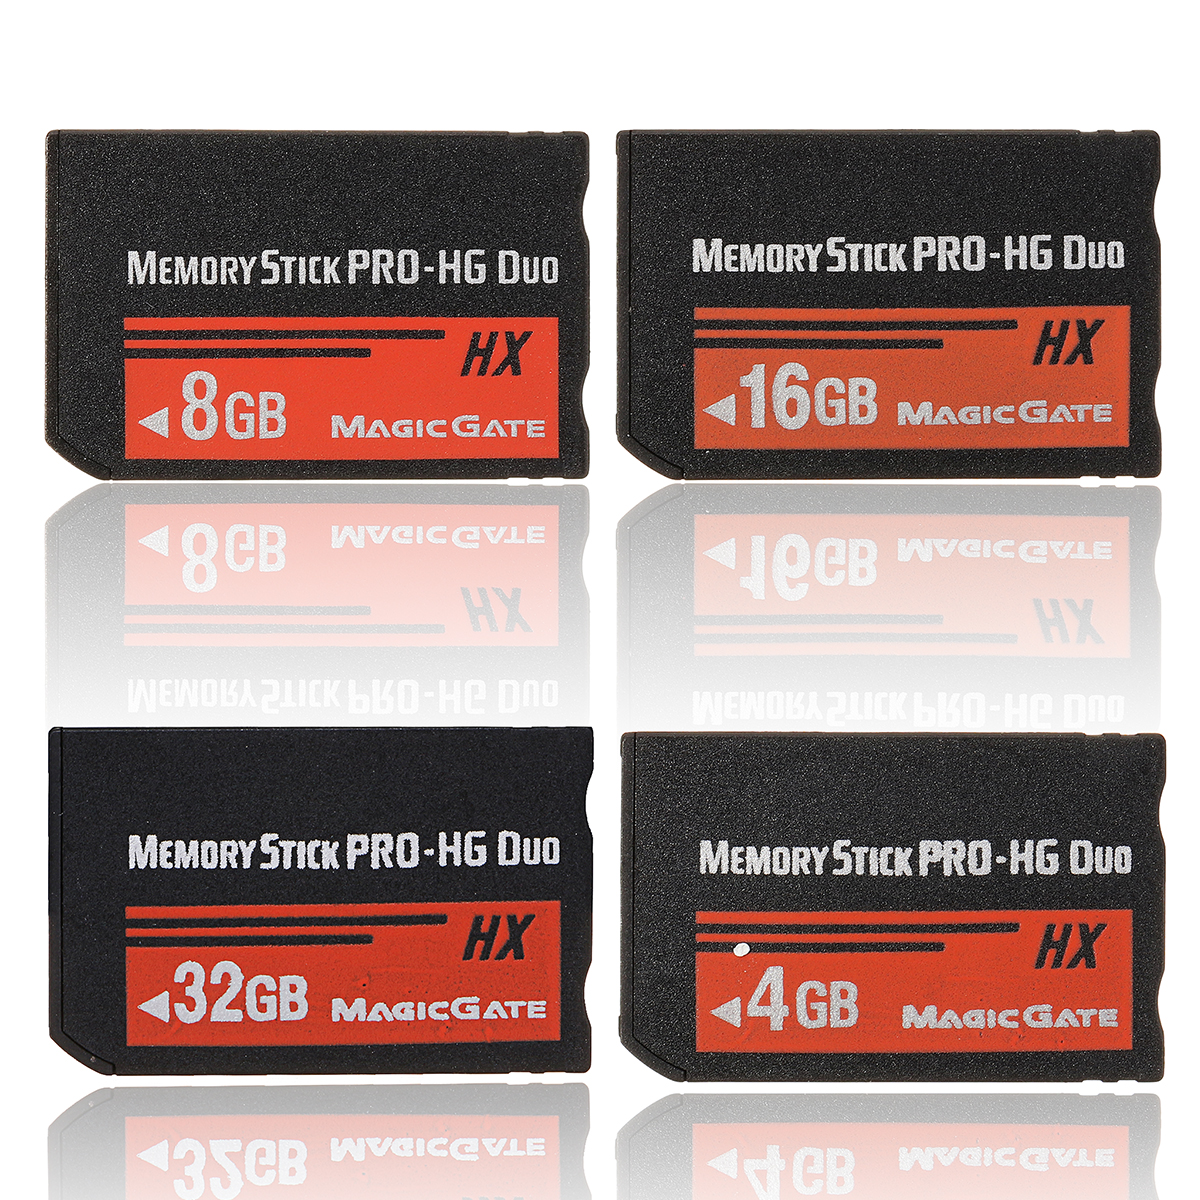 4/8/16/32GB Memory Stick MS Pro Duo Flash Card For Sony for PSP Cybershot Camera Full Capacity Game Memory Cards4/8/16/32GB Memory Stick MS Pro Duo Flash Card For Sony for PSP Cybershot Camera Full Capacity Game Memory Cards